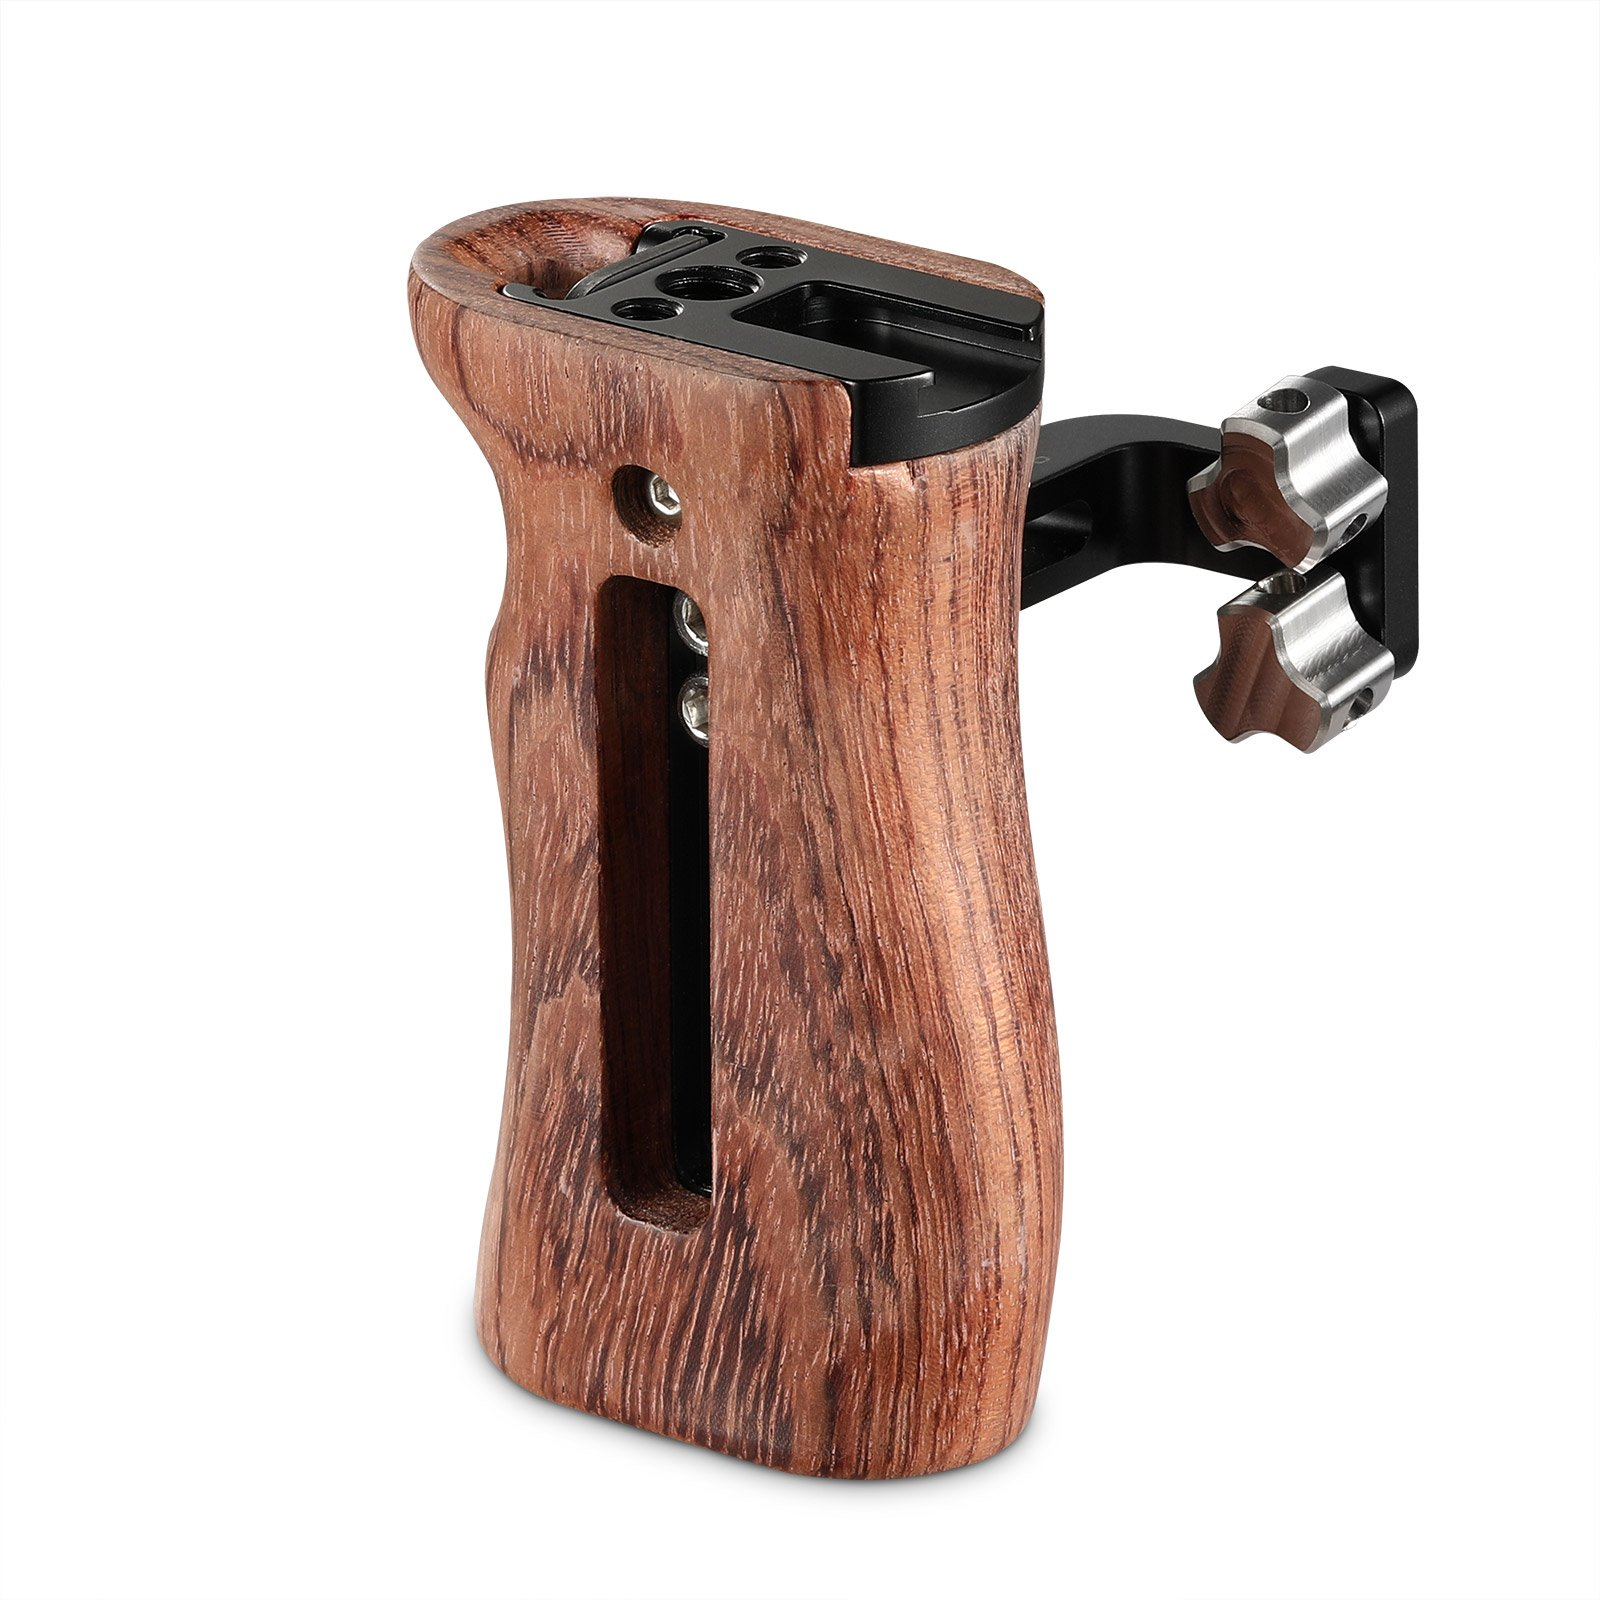 Smallrig 2093 Universal Side Wooden Handle Grip For Dslr ...